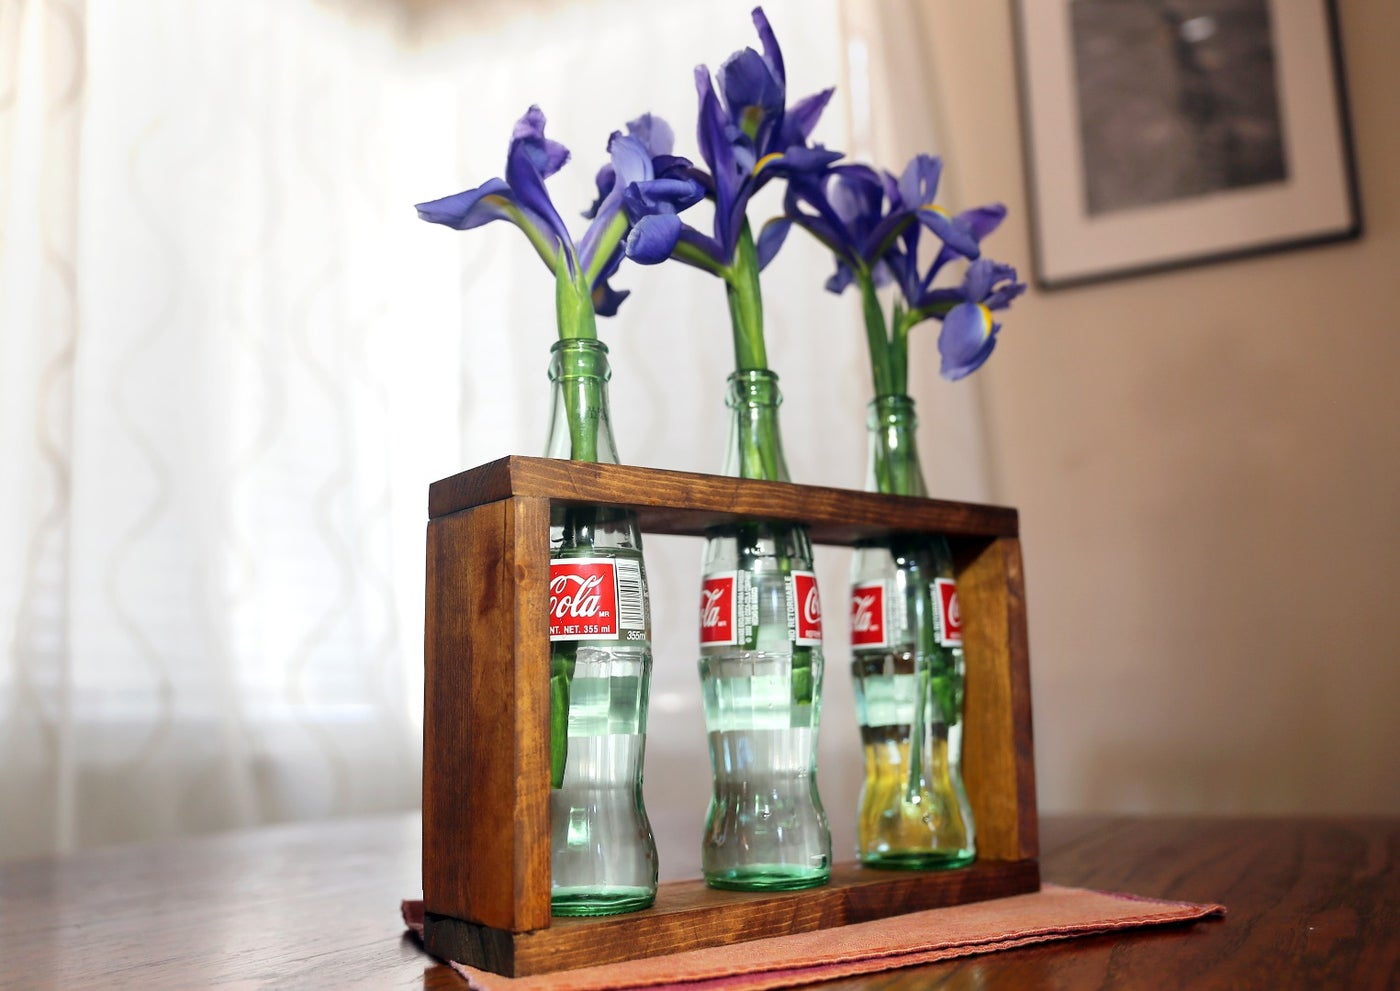 Project Time - Upcycled Bottle Vase With Perfectly Drilled Holes